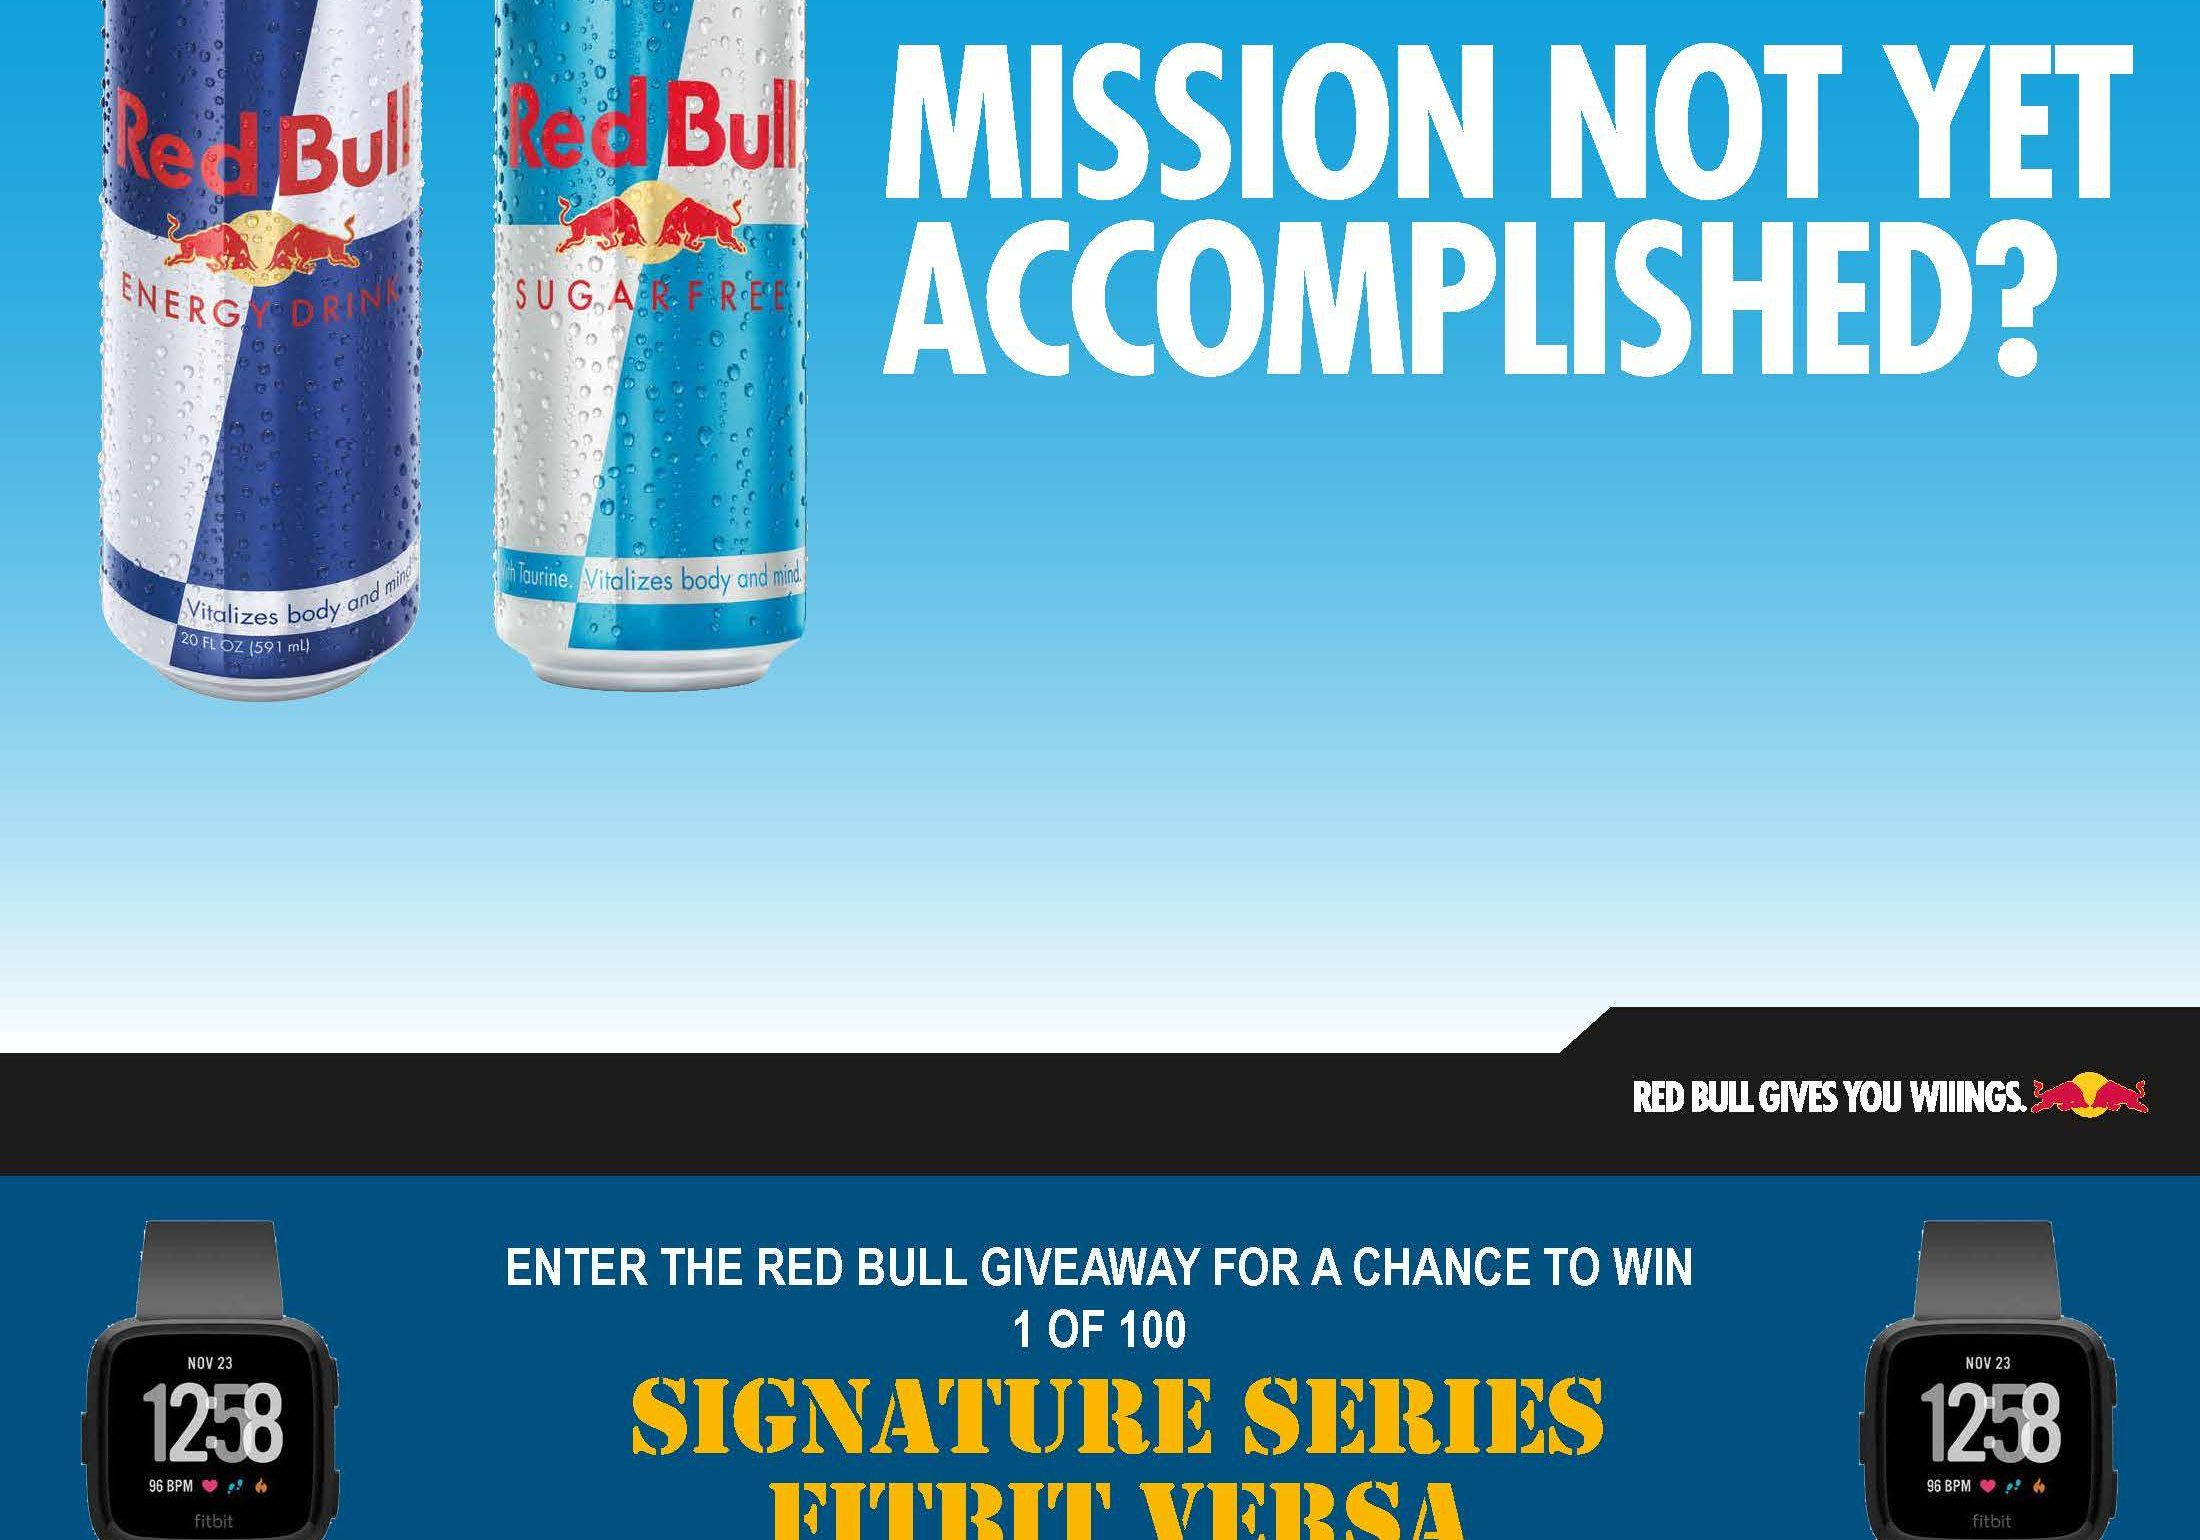 93010_Red Bull Sweepstakes_22x28